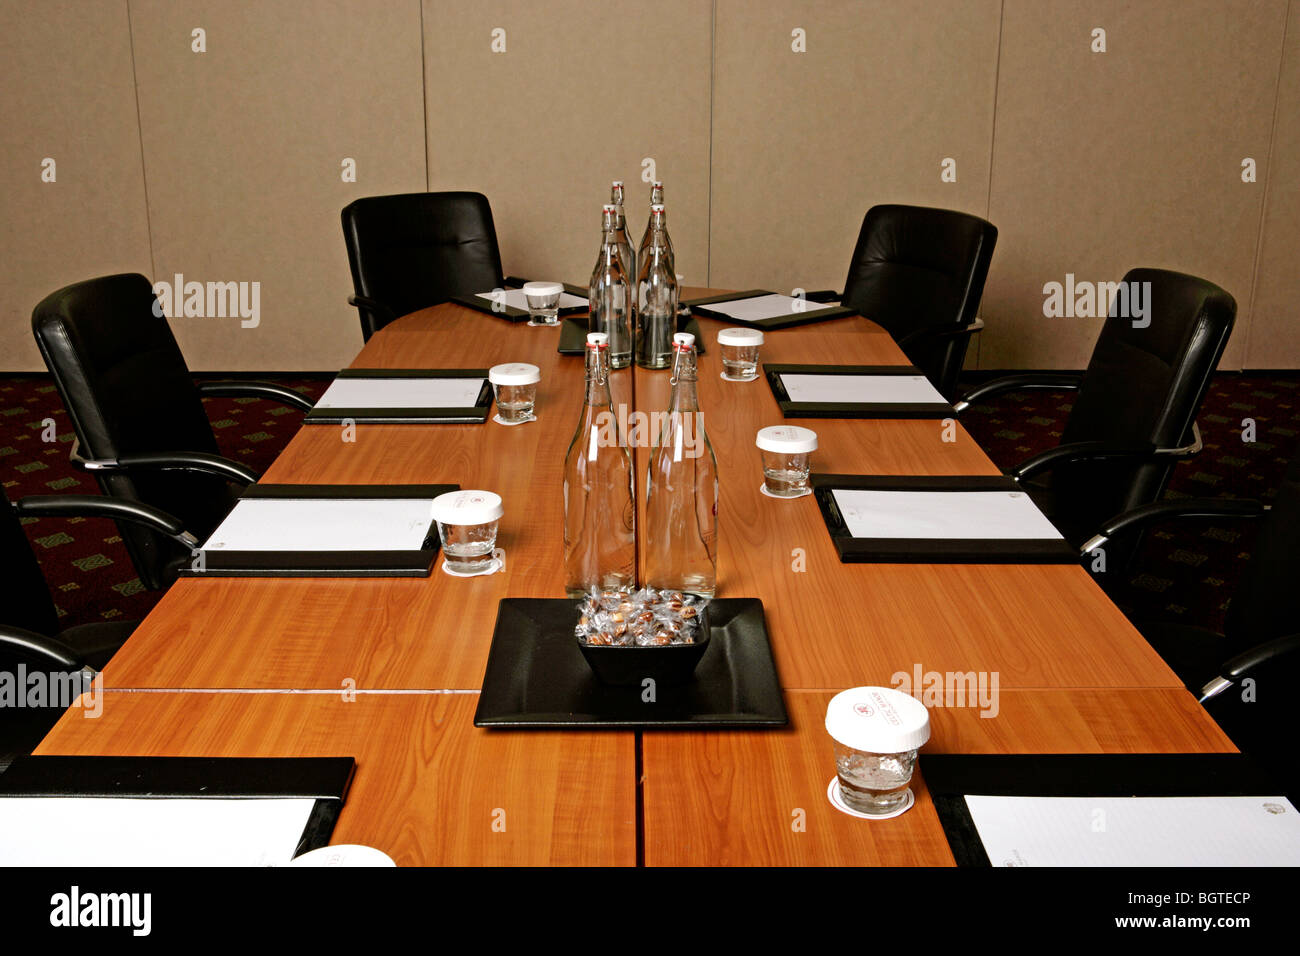 Conference room tables set for a meeting complete with water glasses pads and notepaper & Conference room tables set for a meeting complete with water ...